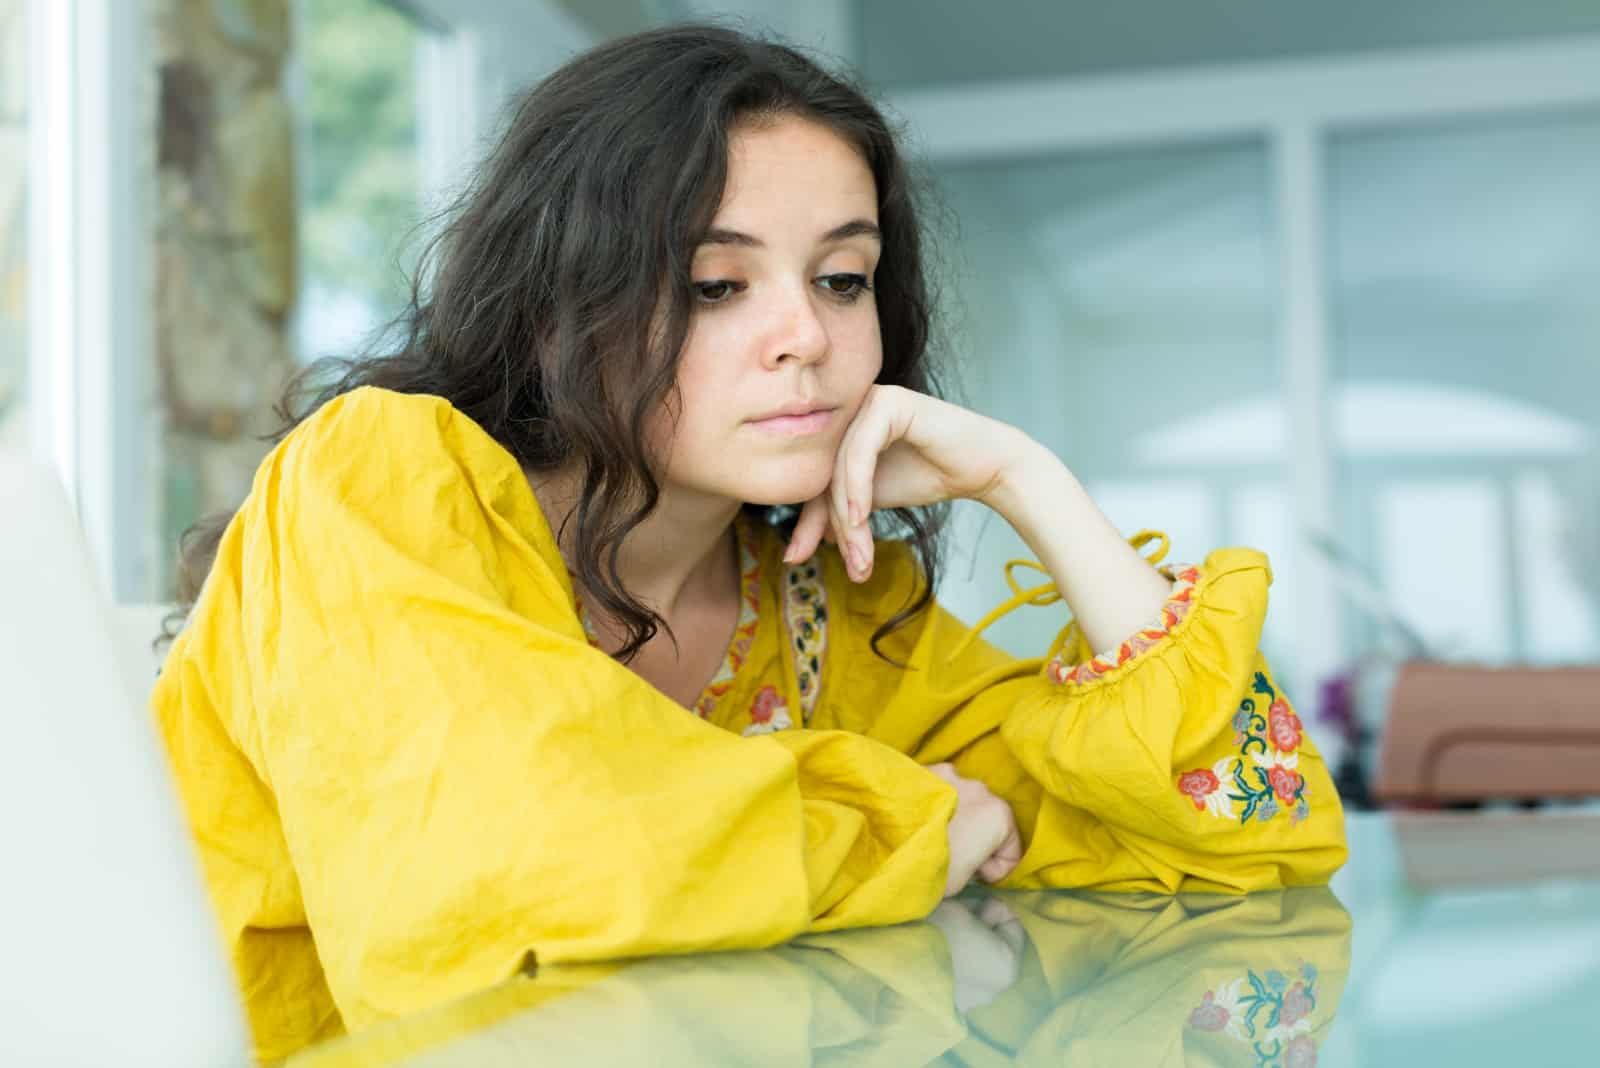 sad woman in yellow blouse leaning on table